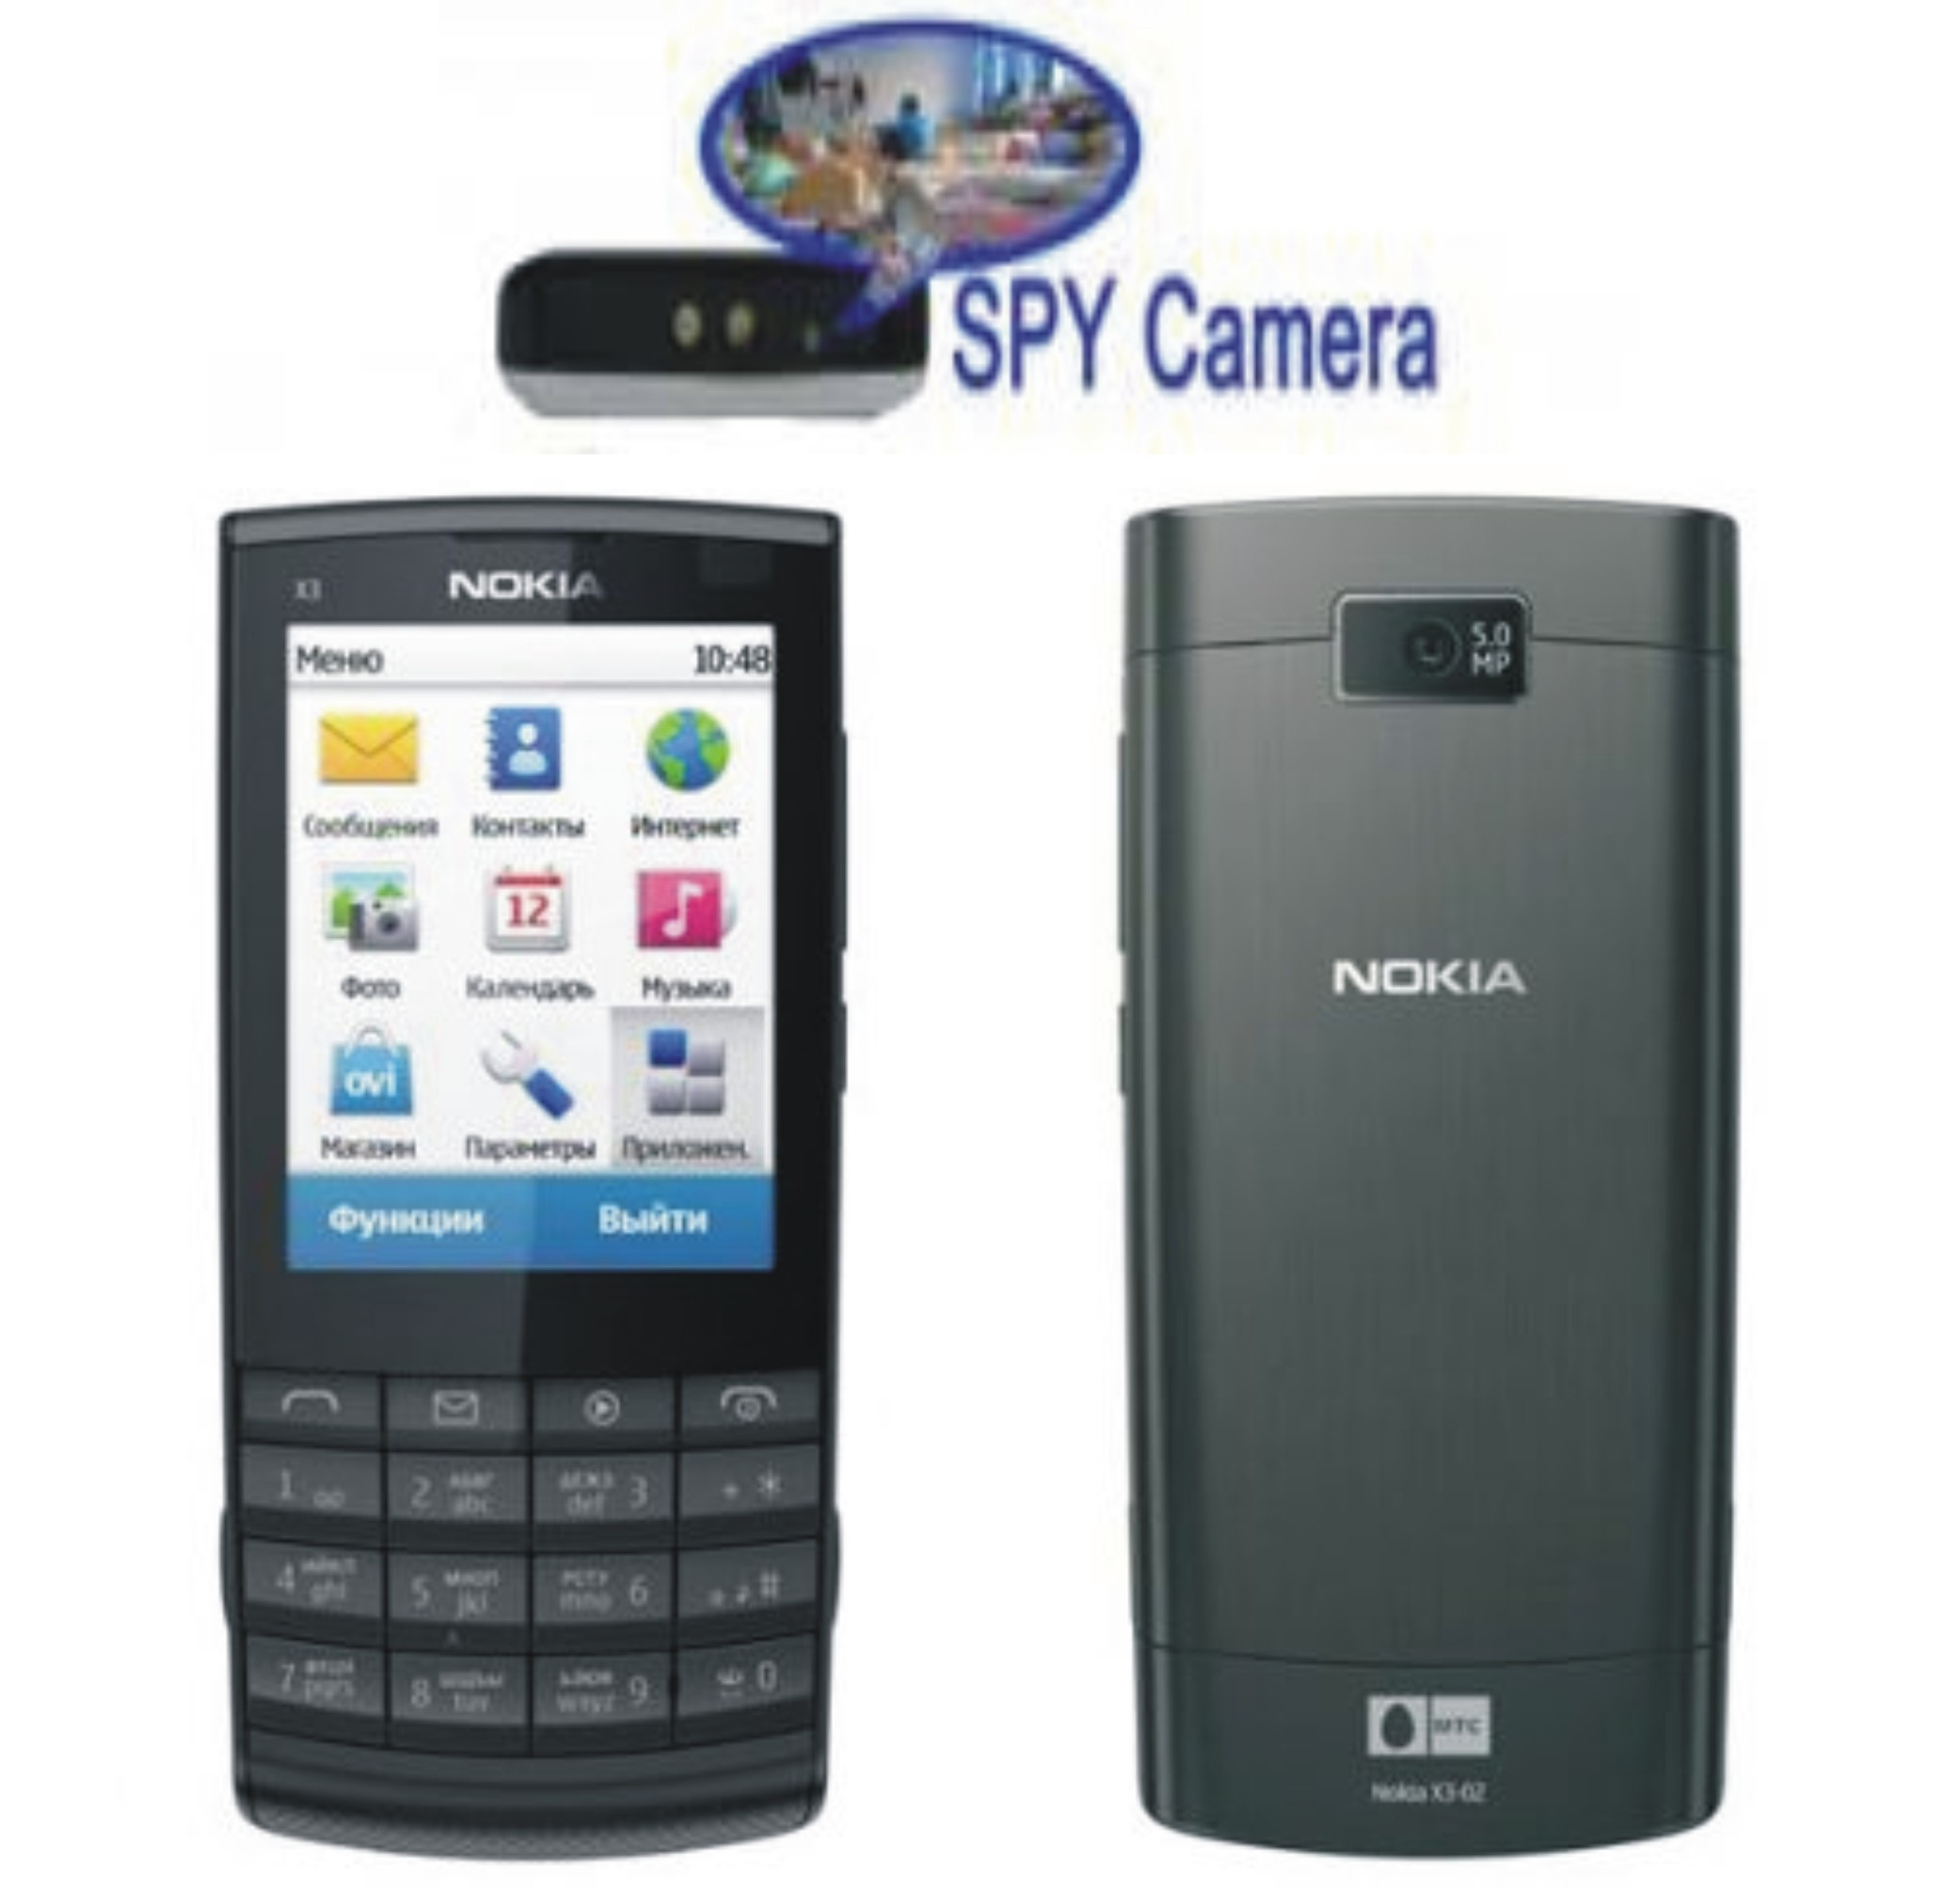 Spy Camera In Nokia Phone Touch Screen In Palakkad